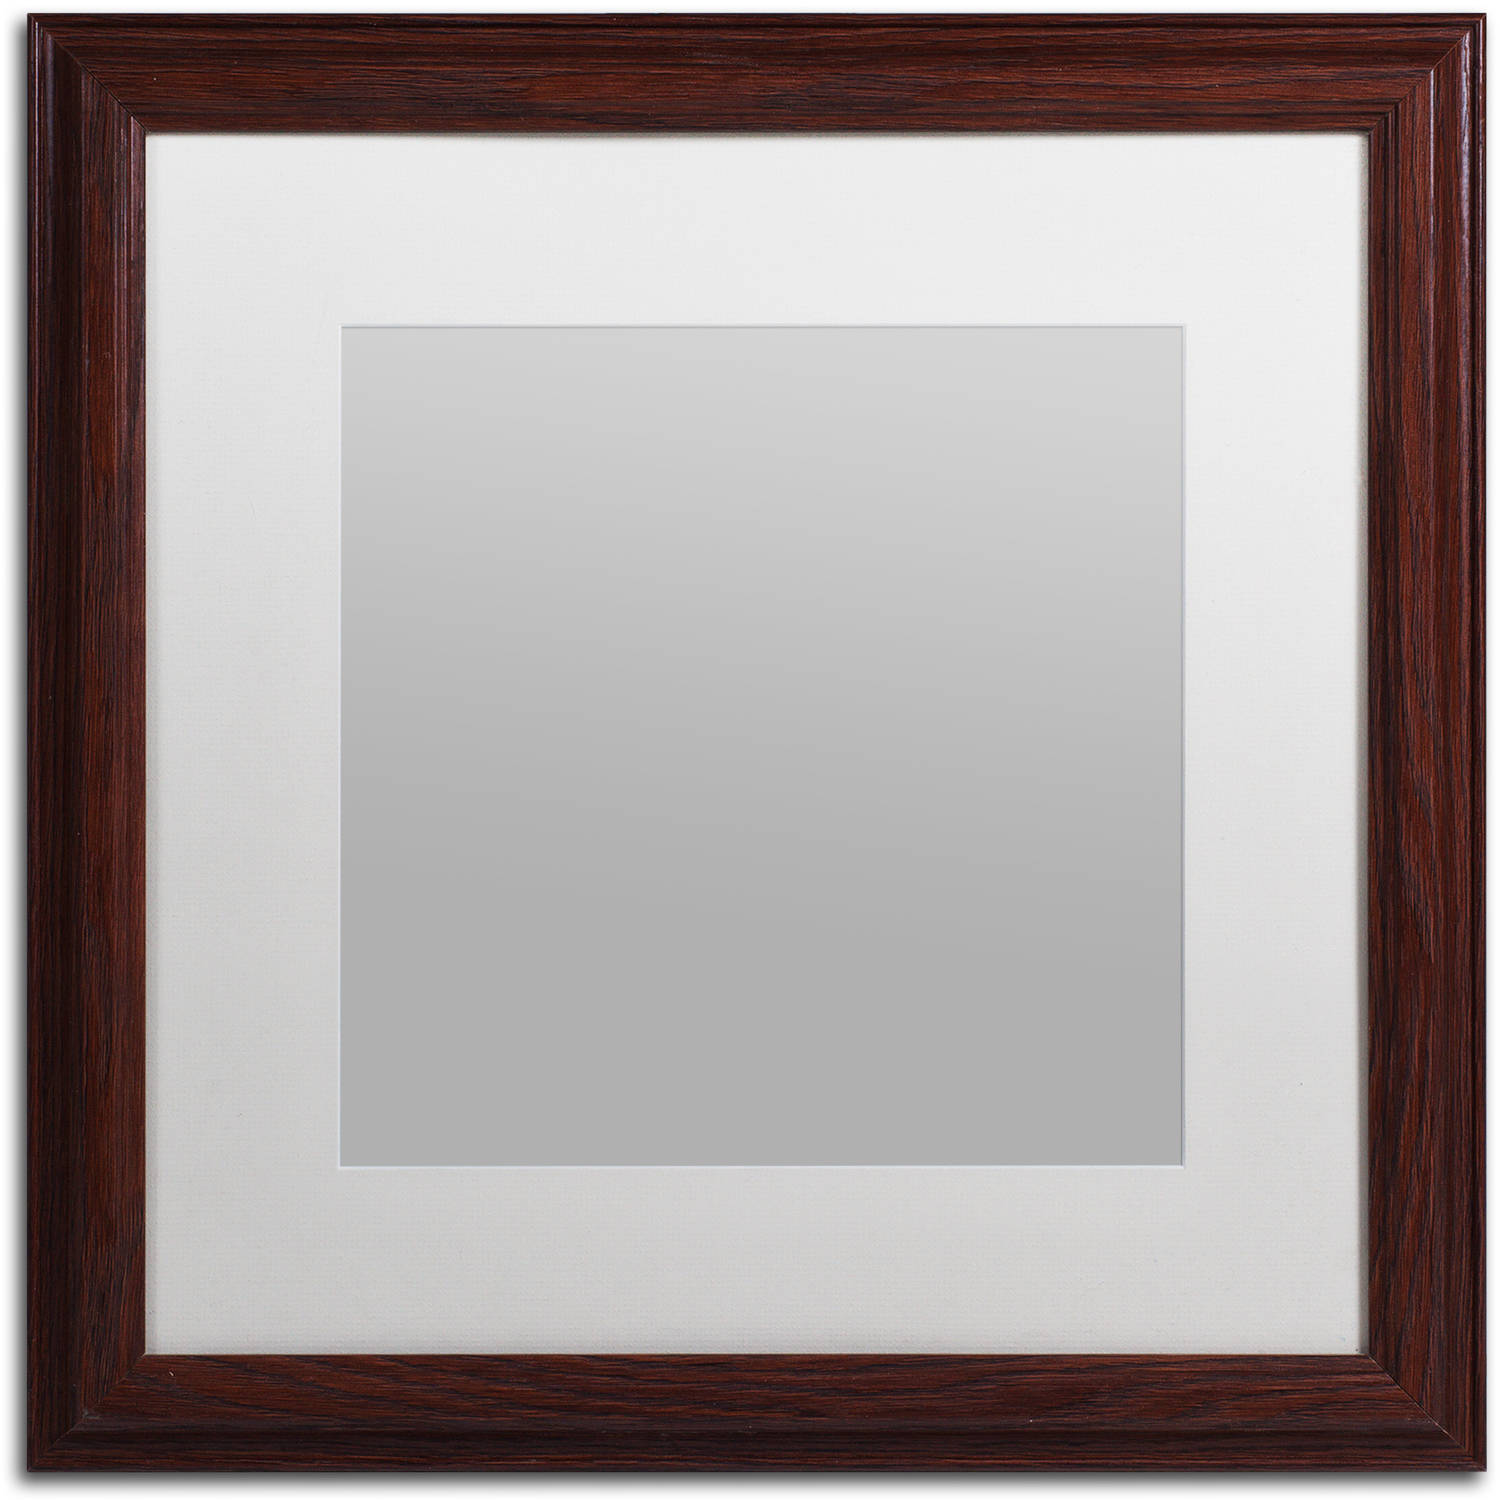 Trademark Fine Art Heavy Duty 16x16 Wood Picture Frame